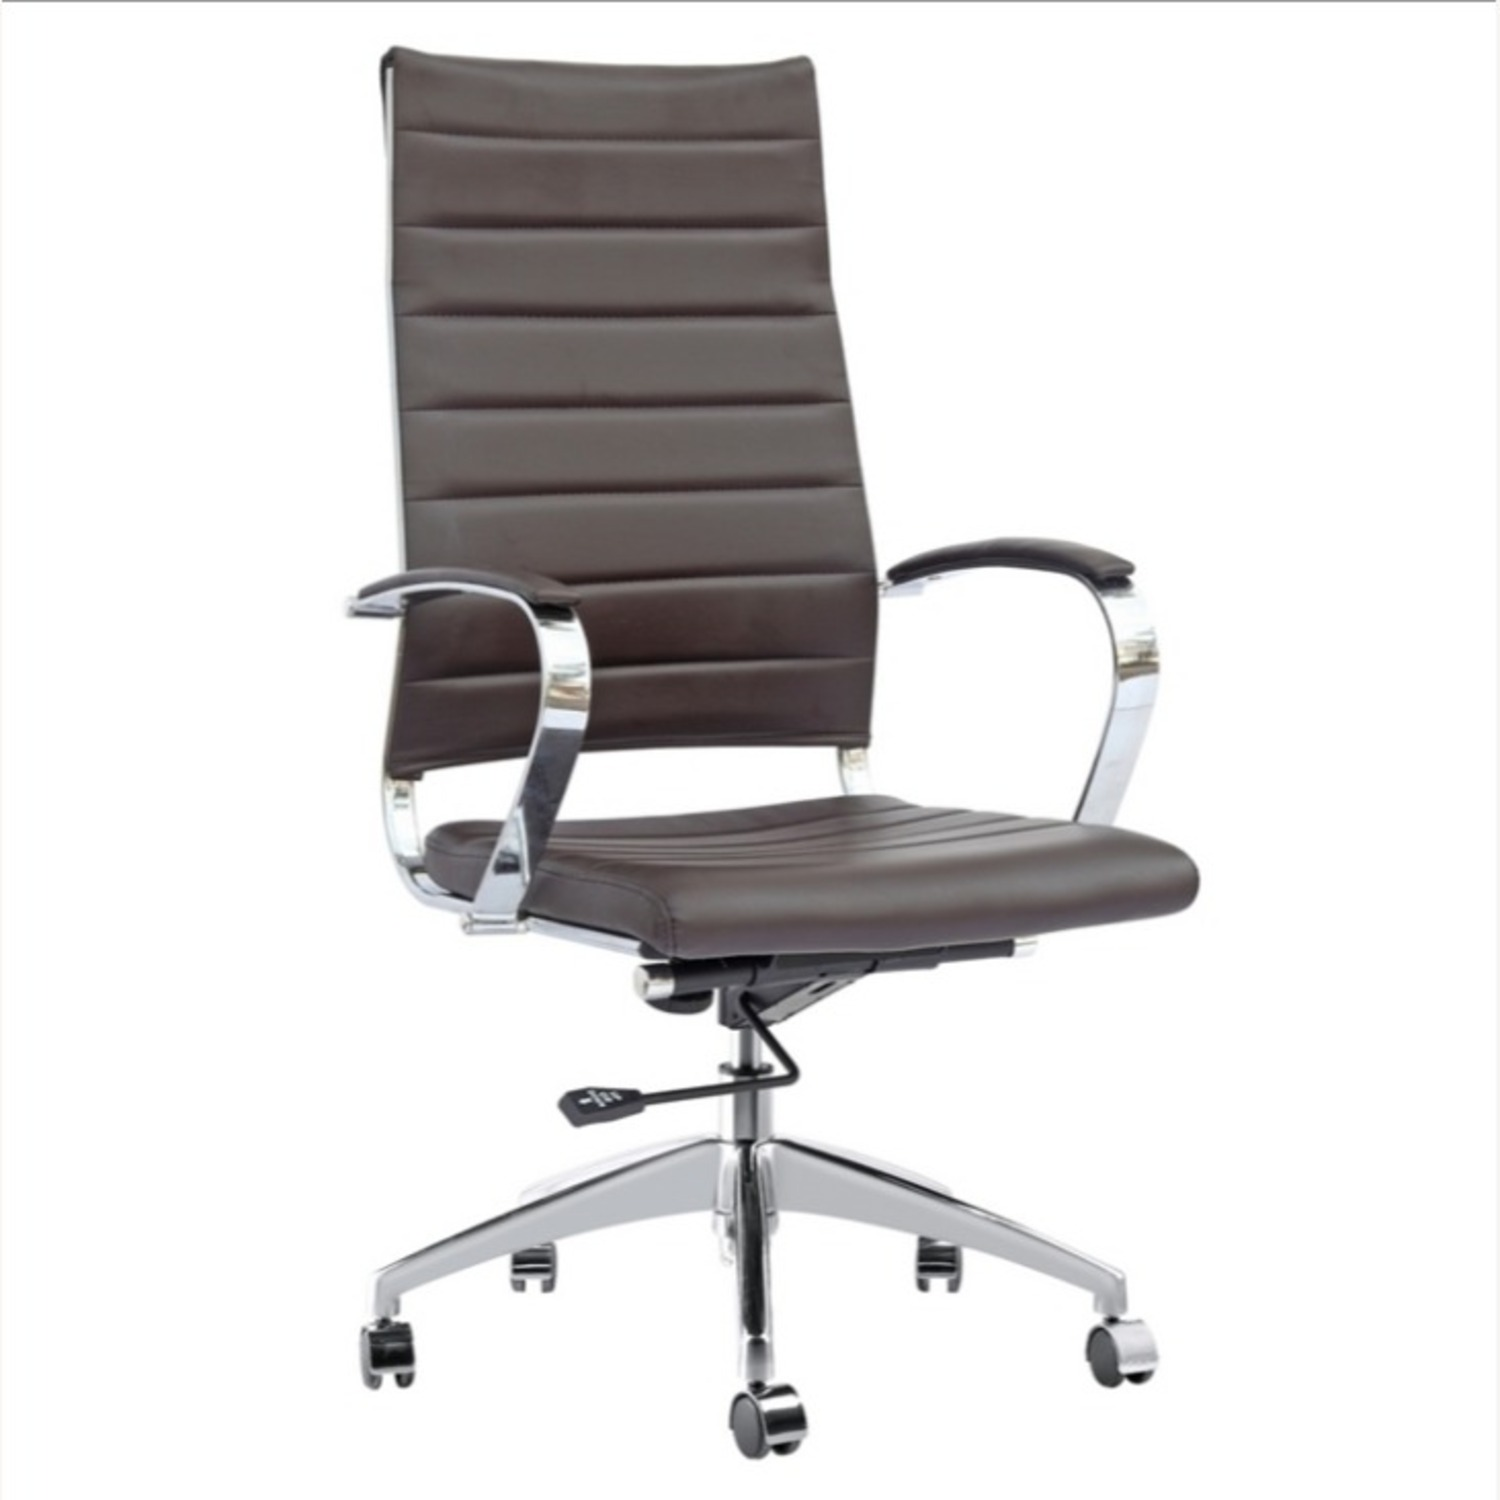 Office Chair W/ High Back Seat In Dark Brown - image-0